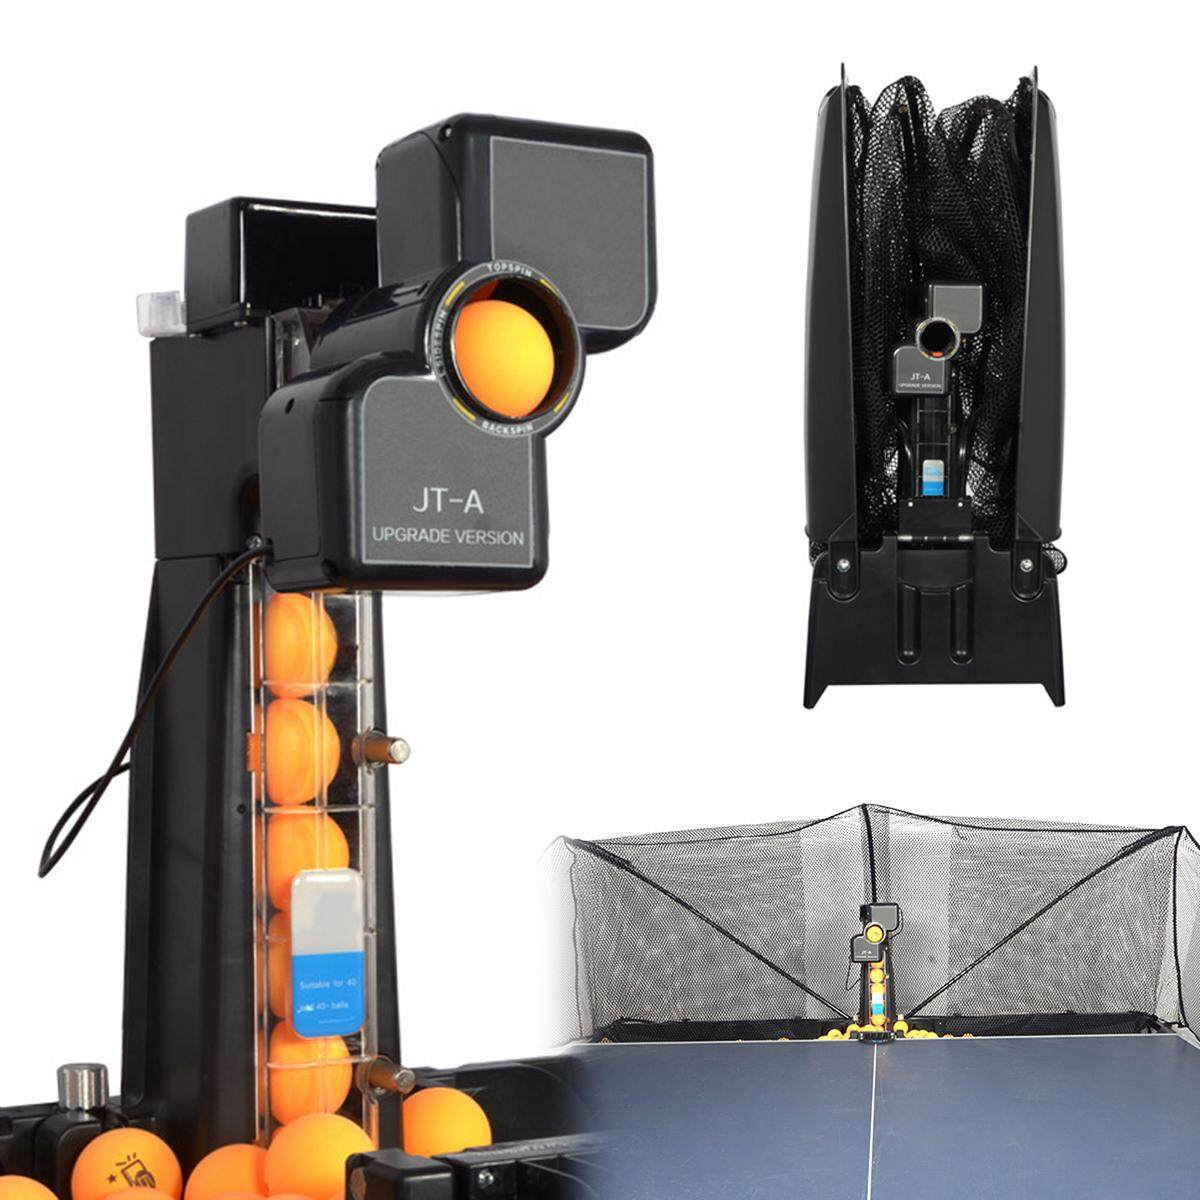 Table Tennis Robot Automatic Ping-Pong Ball Machine Practice Recycle W/ 100 Ball By Audew.